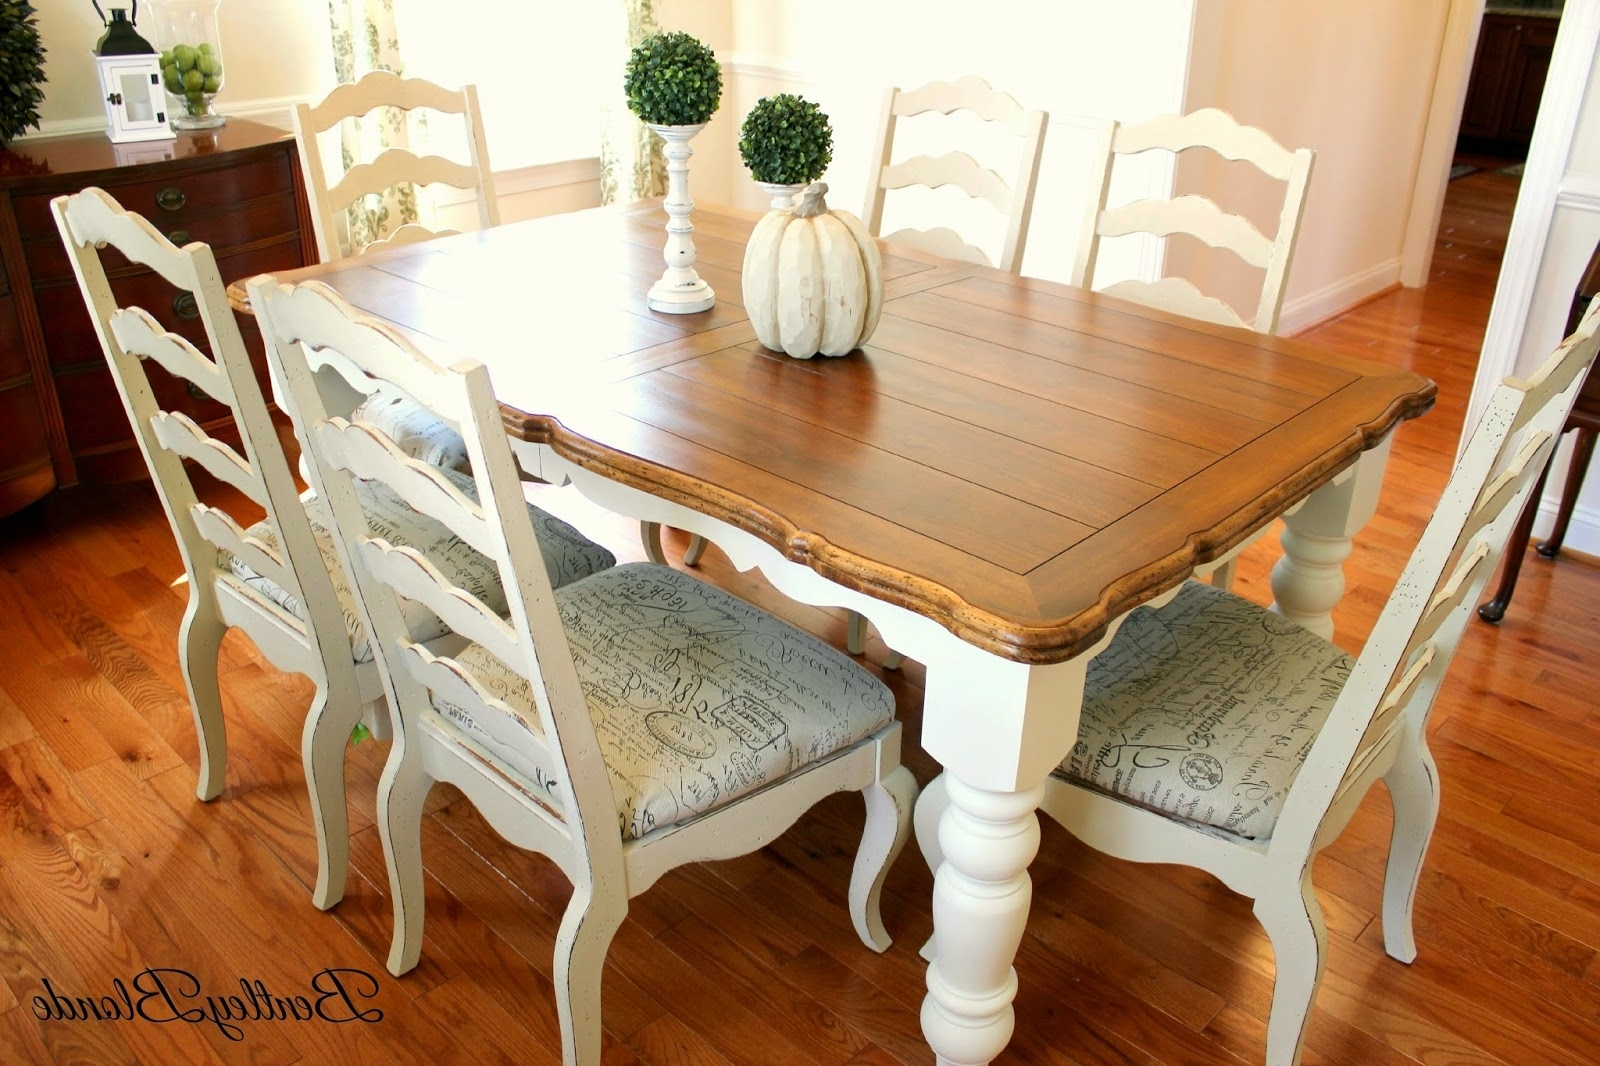 Trendy Bentleyblonde: Diy Farmhouse Table & Dining Set Makeover With Annie In Painted Dining Tables (View 5 of 25)